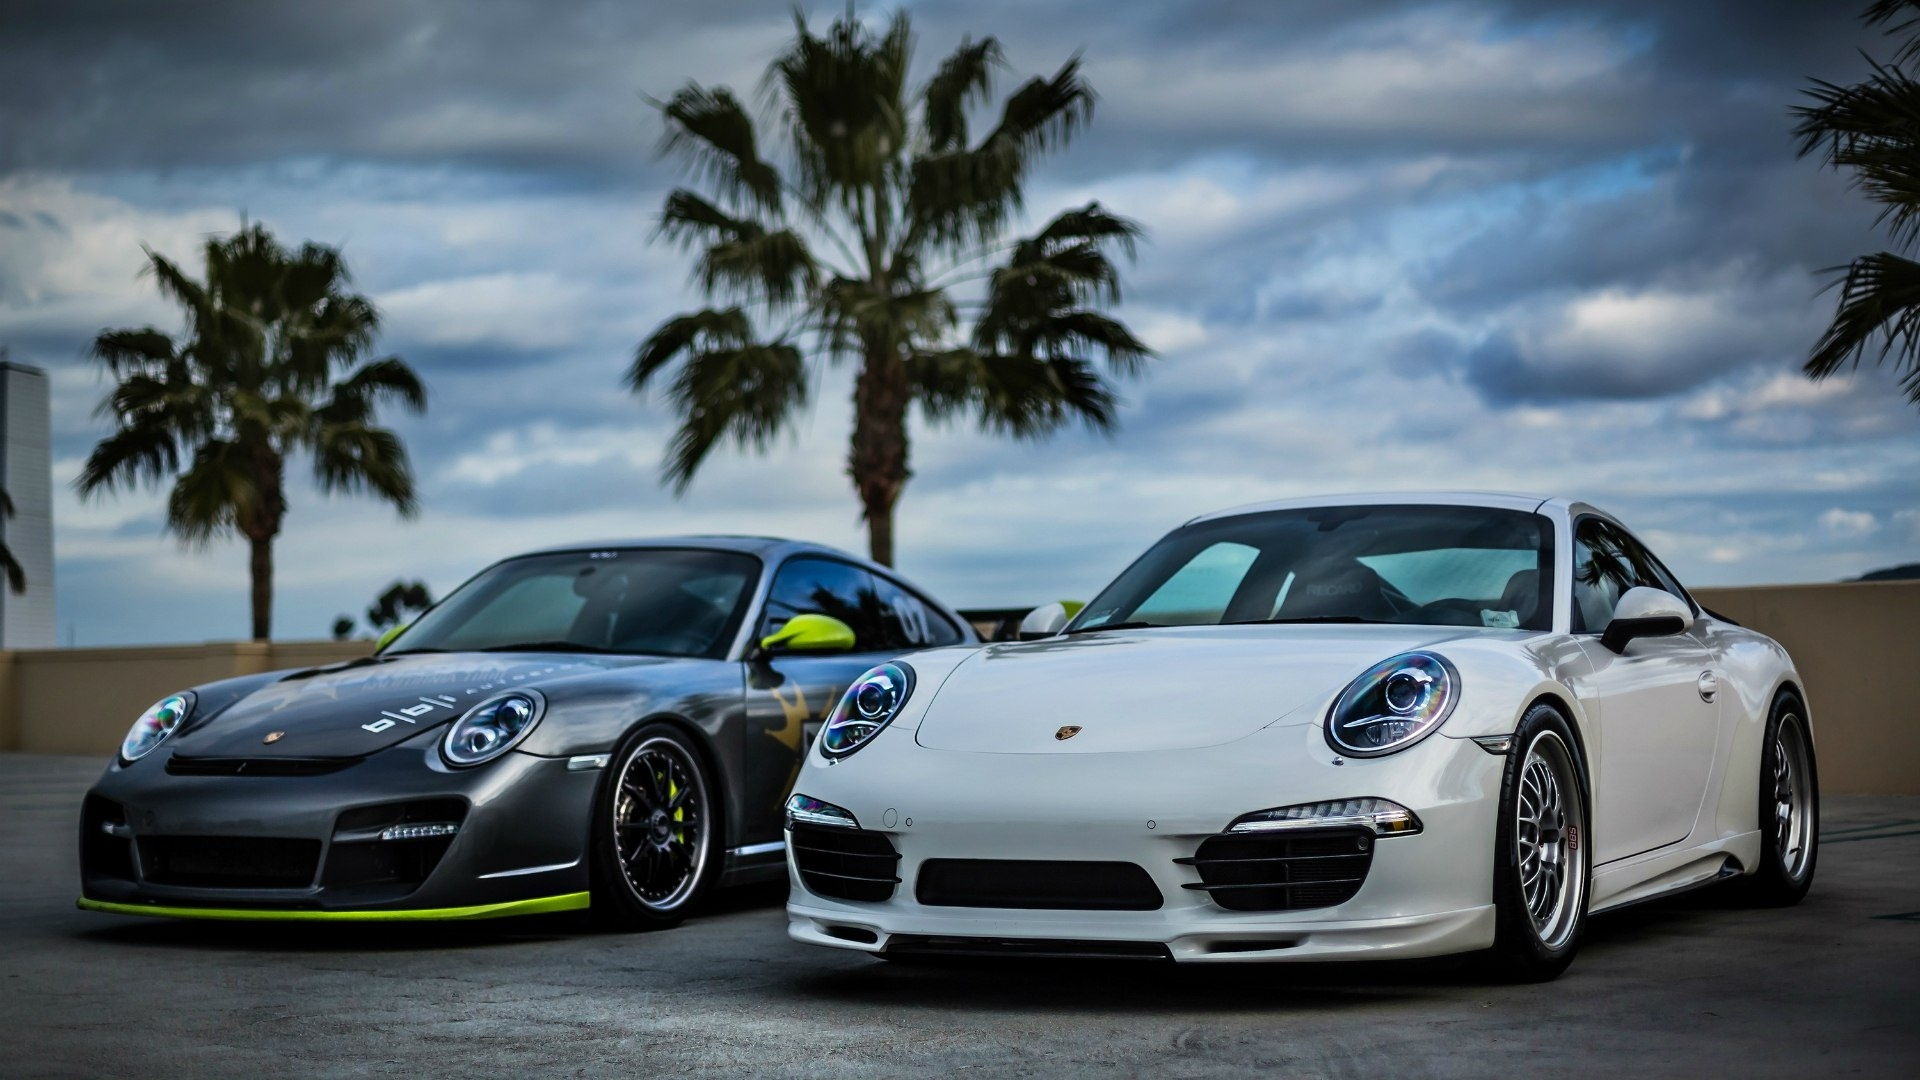 Porsche windows background